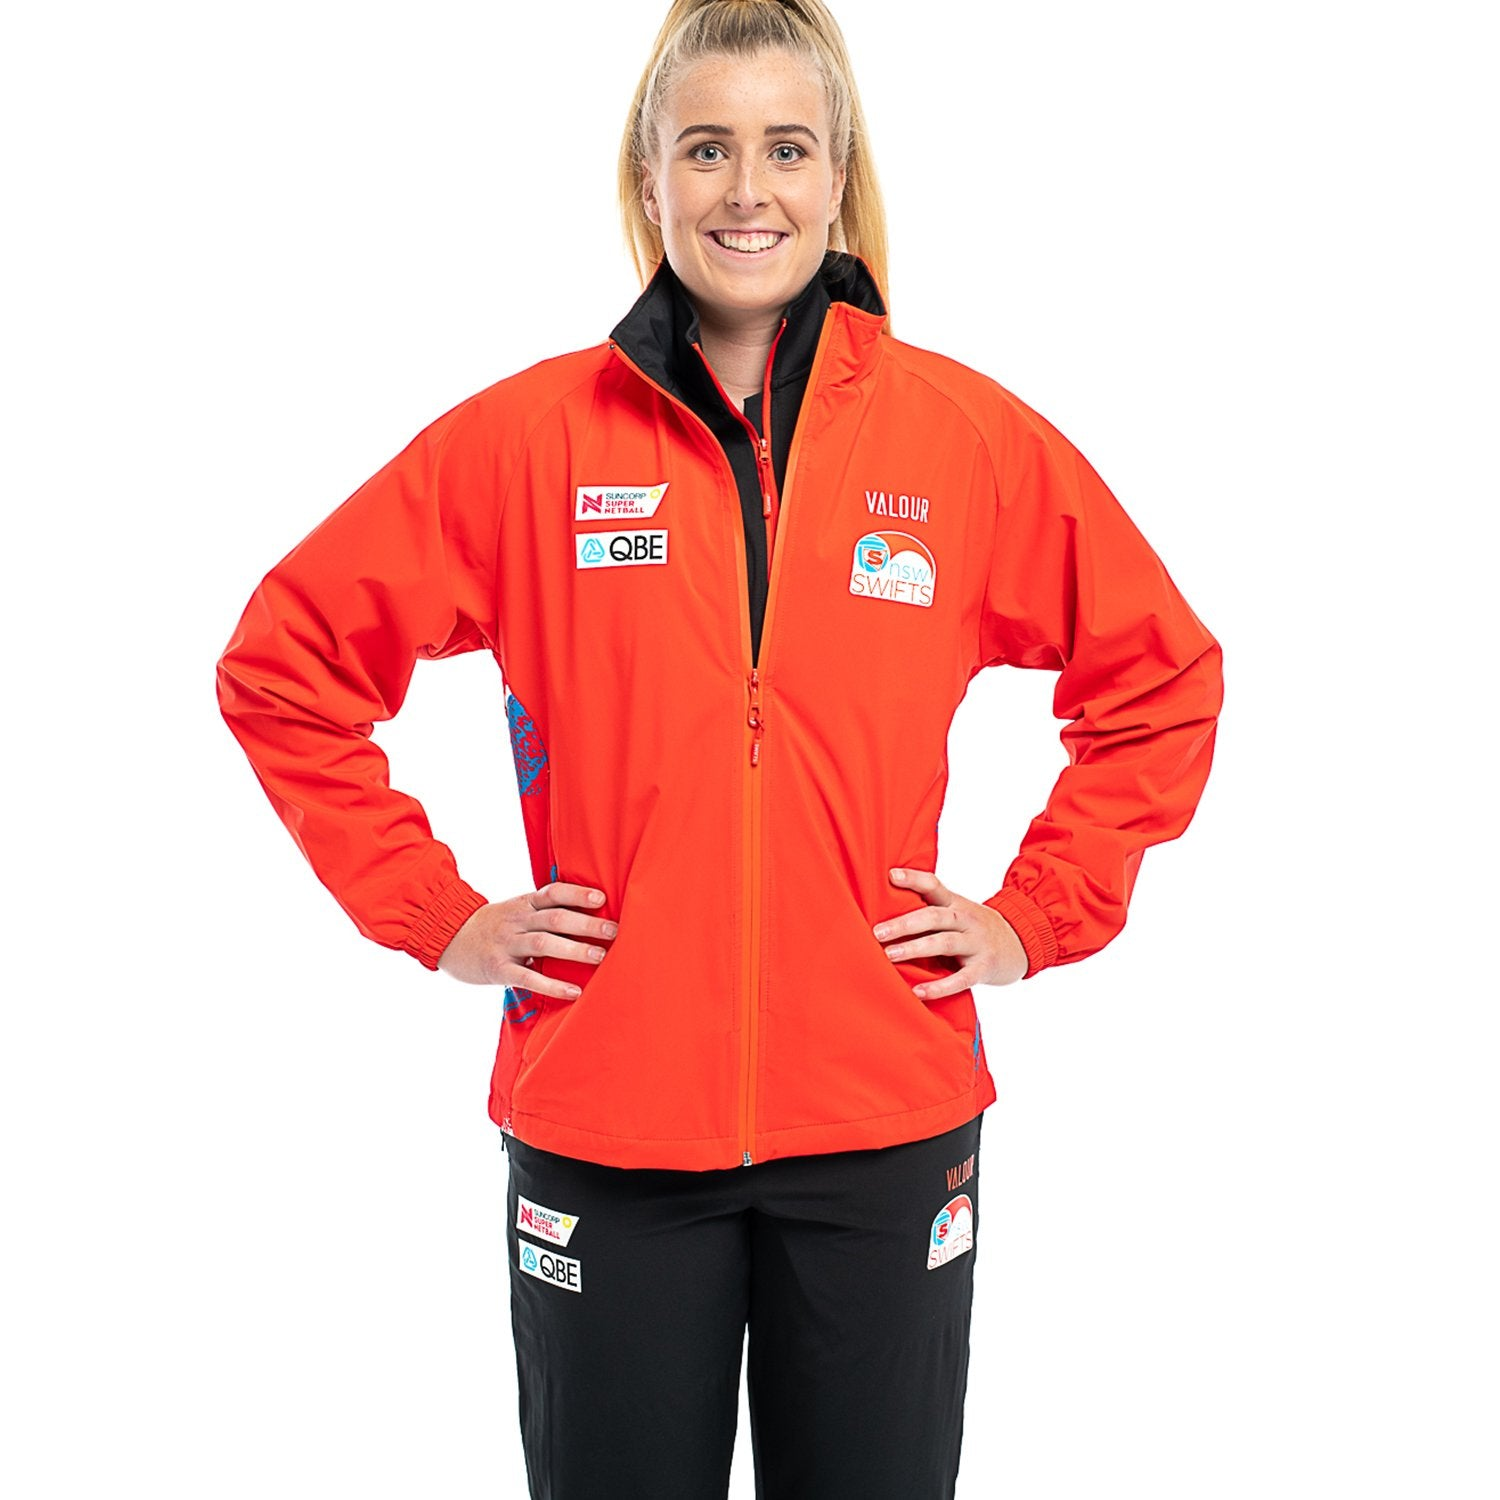 NSW Swifts Replica Zip Front Jacket